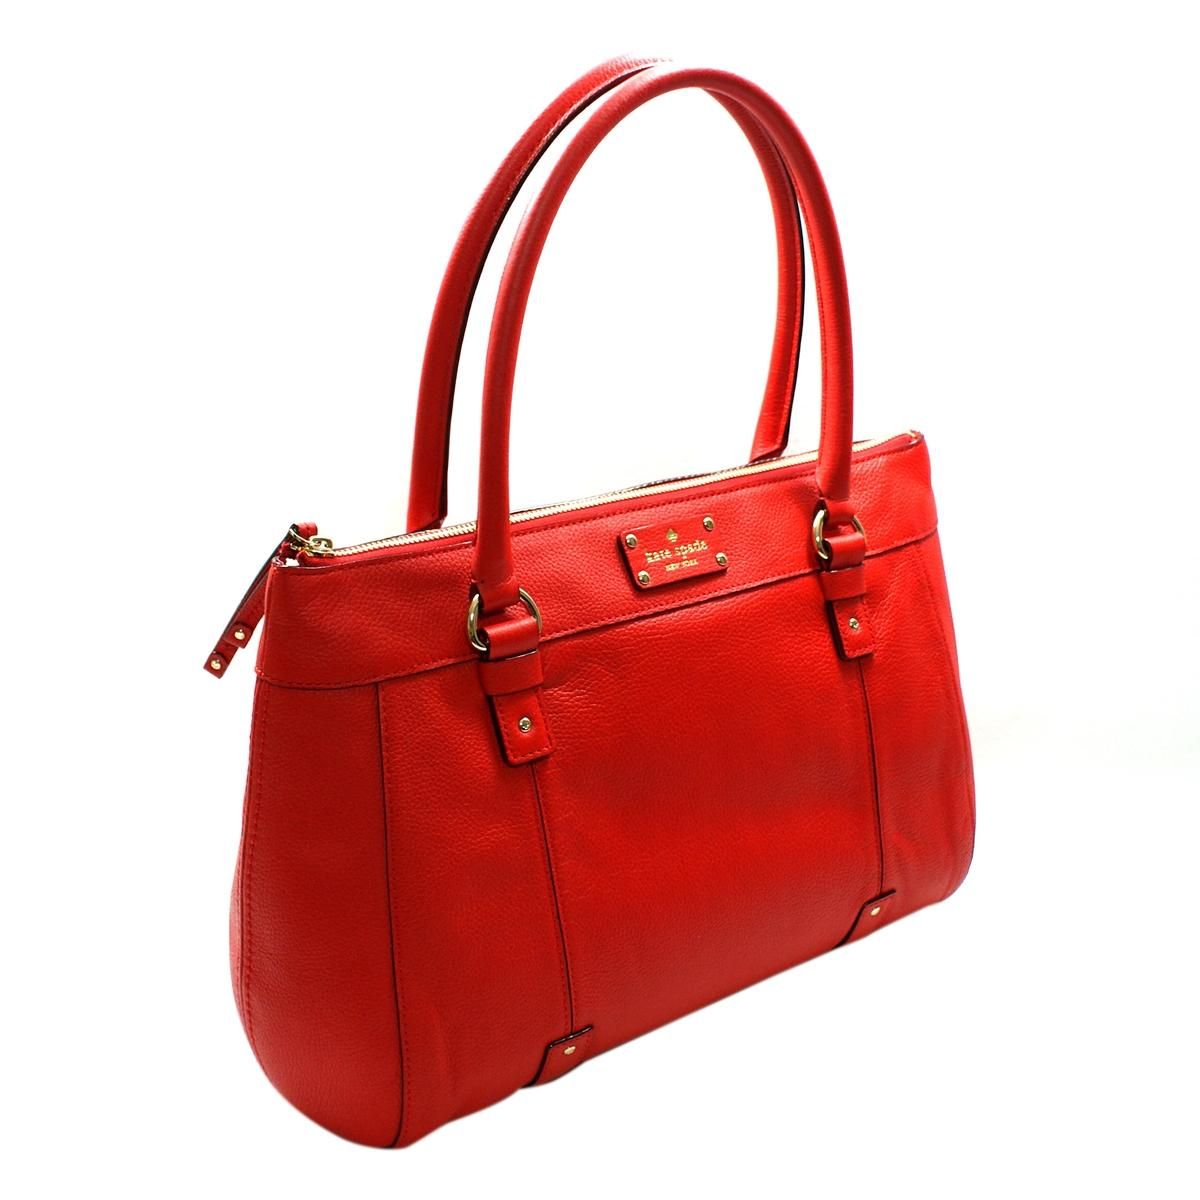 Kate Spade Red Shoulder Bag 7